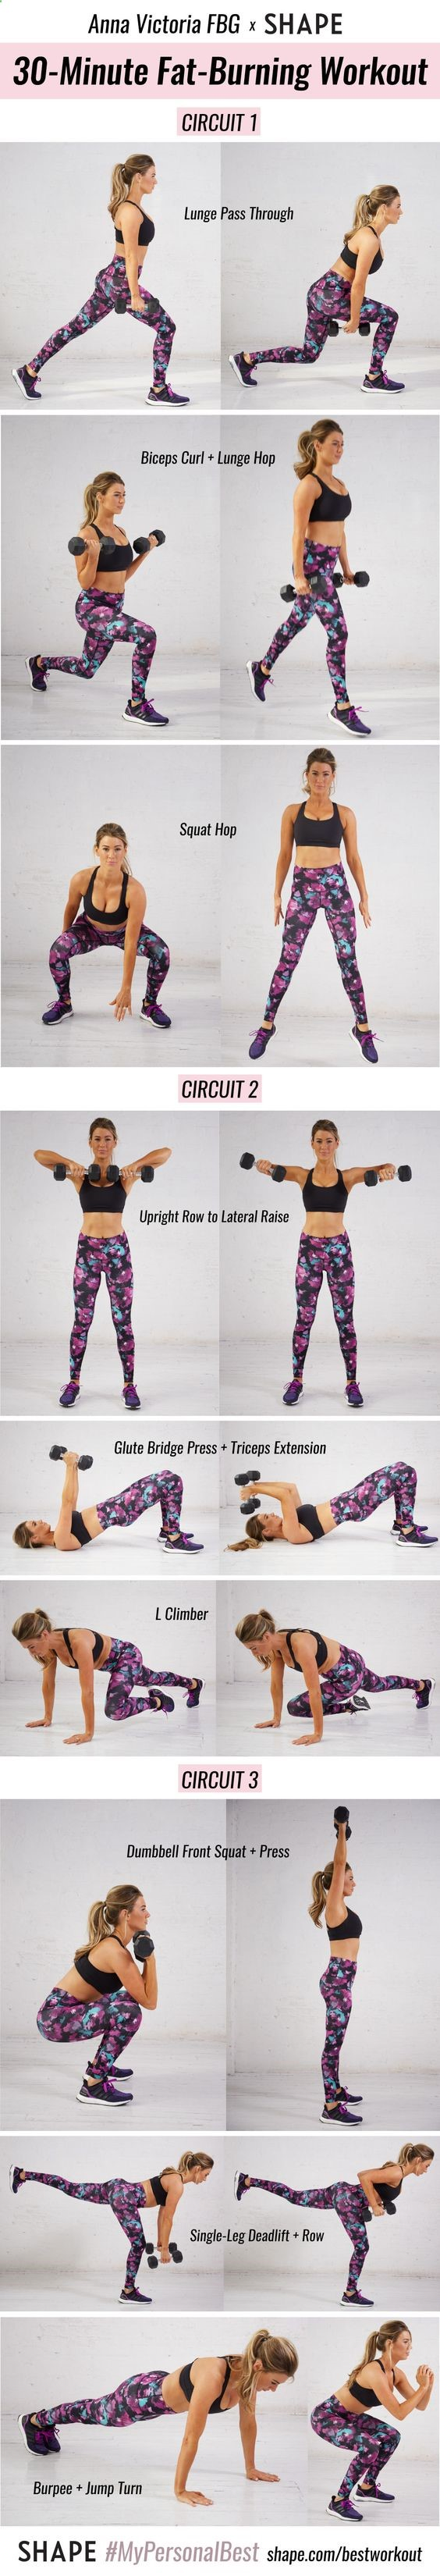 Fat Buster Upper Body Hiit Workout For Women Hitting The Gym Fat